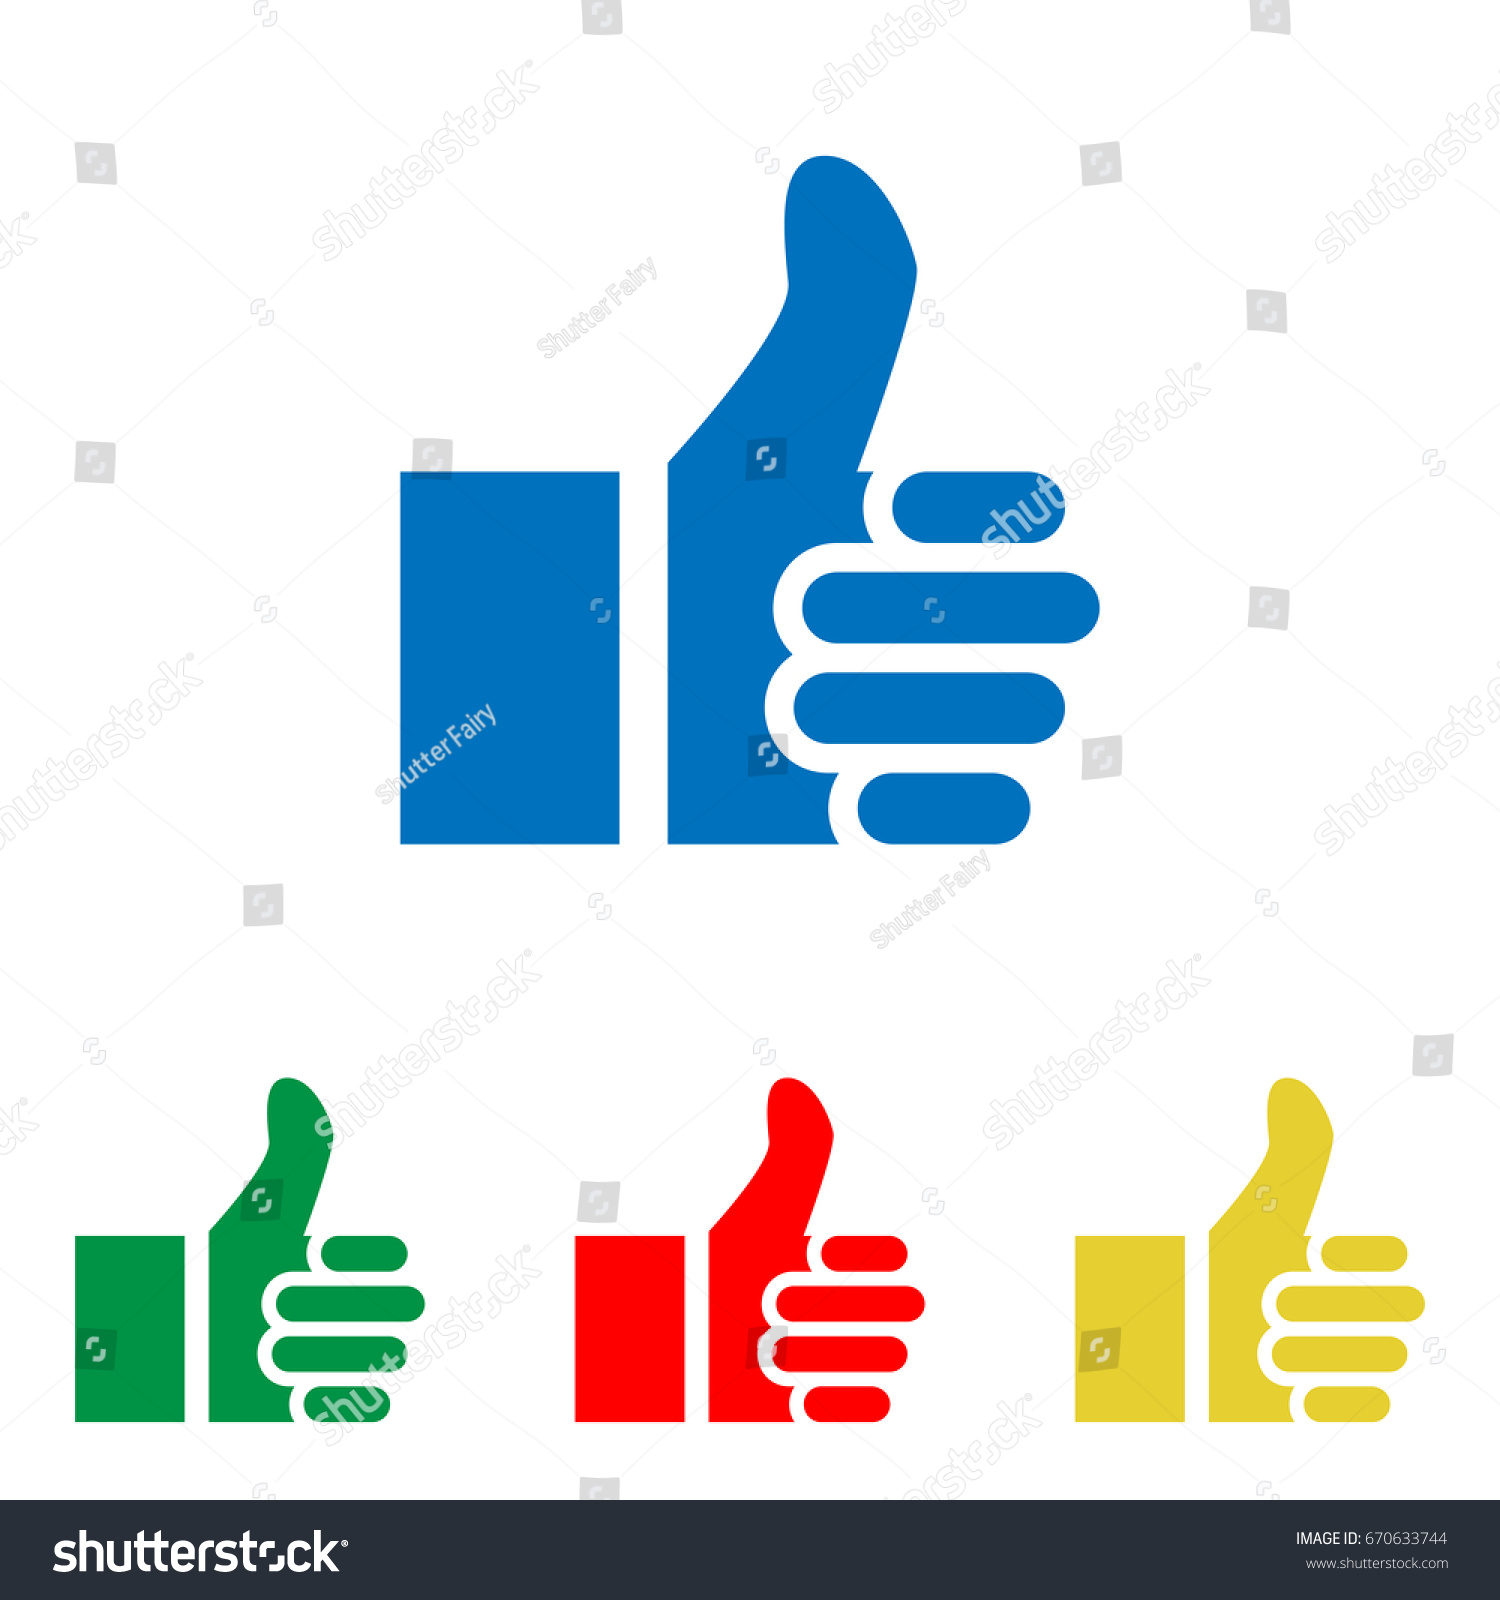 Thumb Symbol Like Gesture Icon Vector Stock Vector Royalty Free